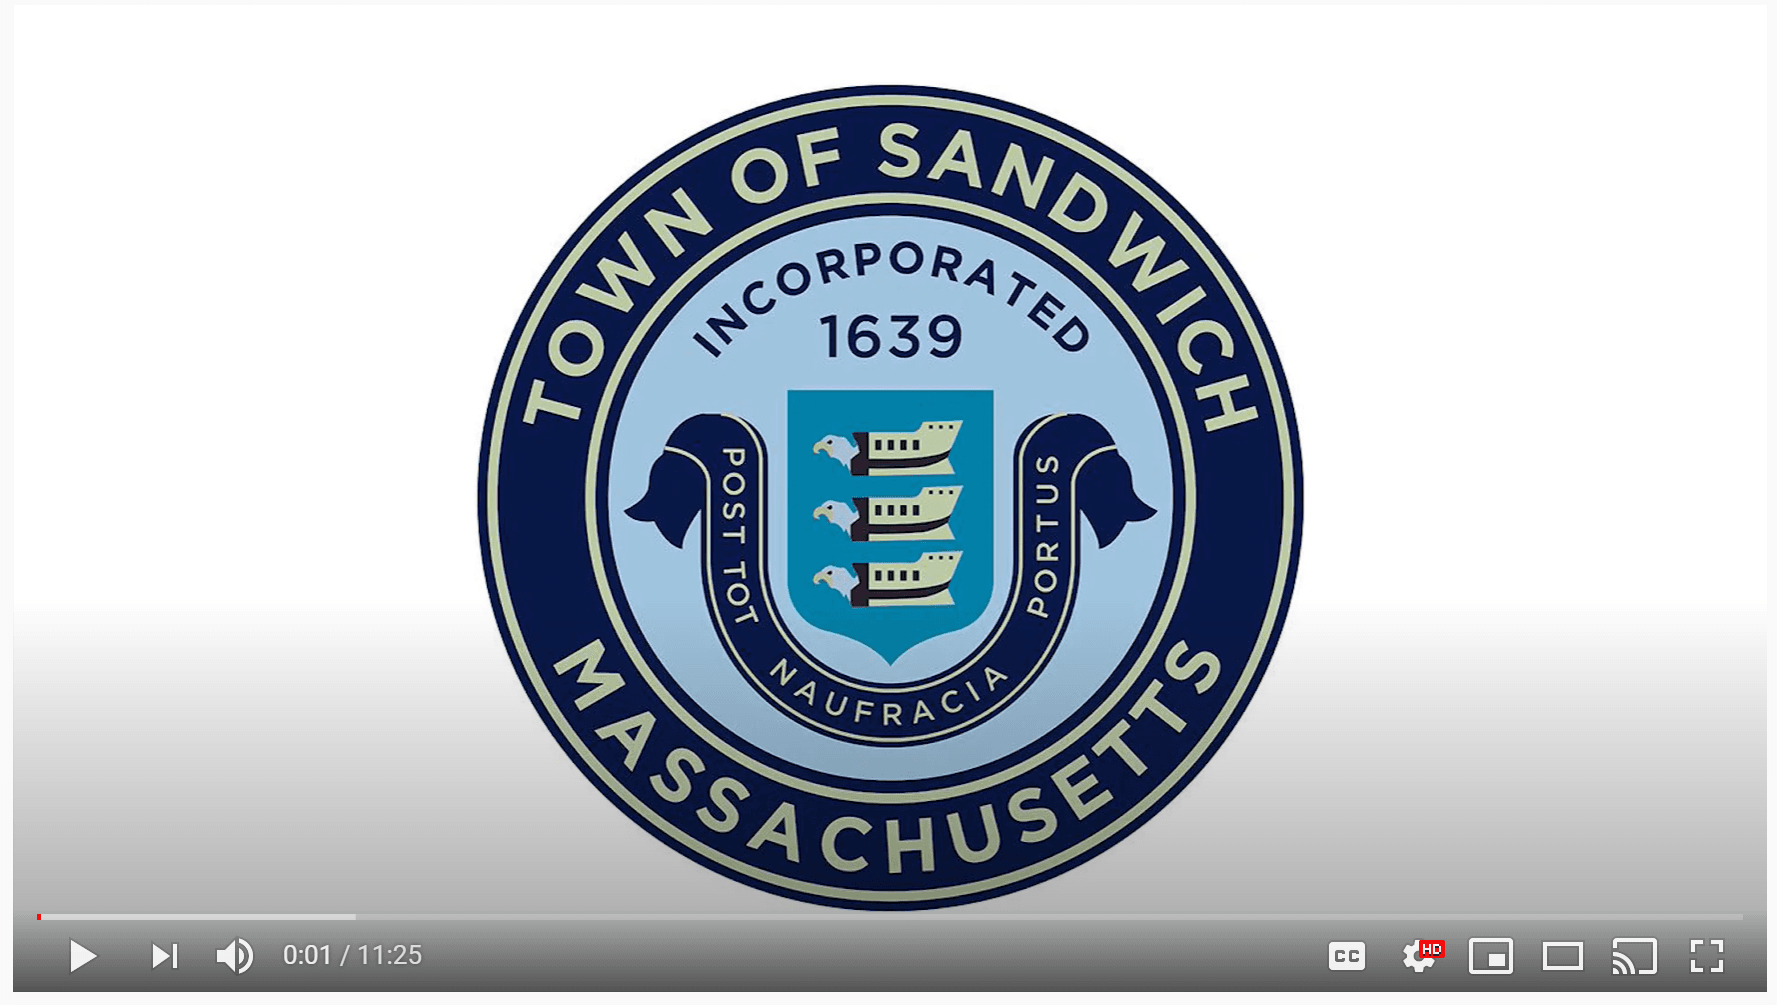 Town of Sandwich Seal